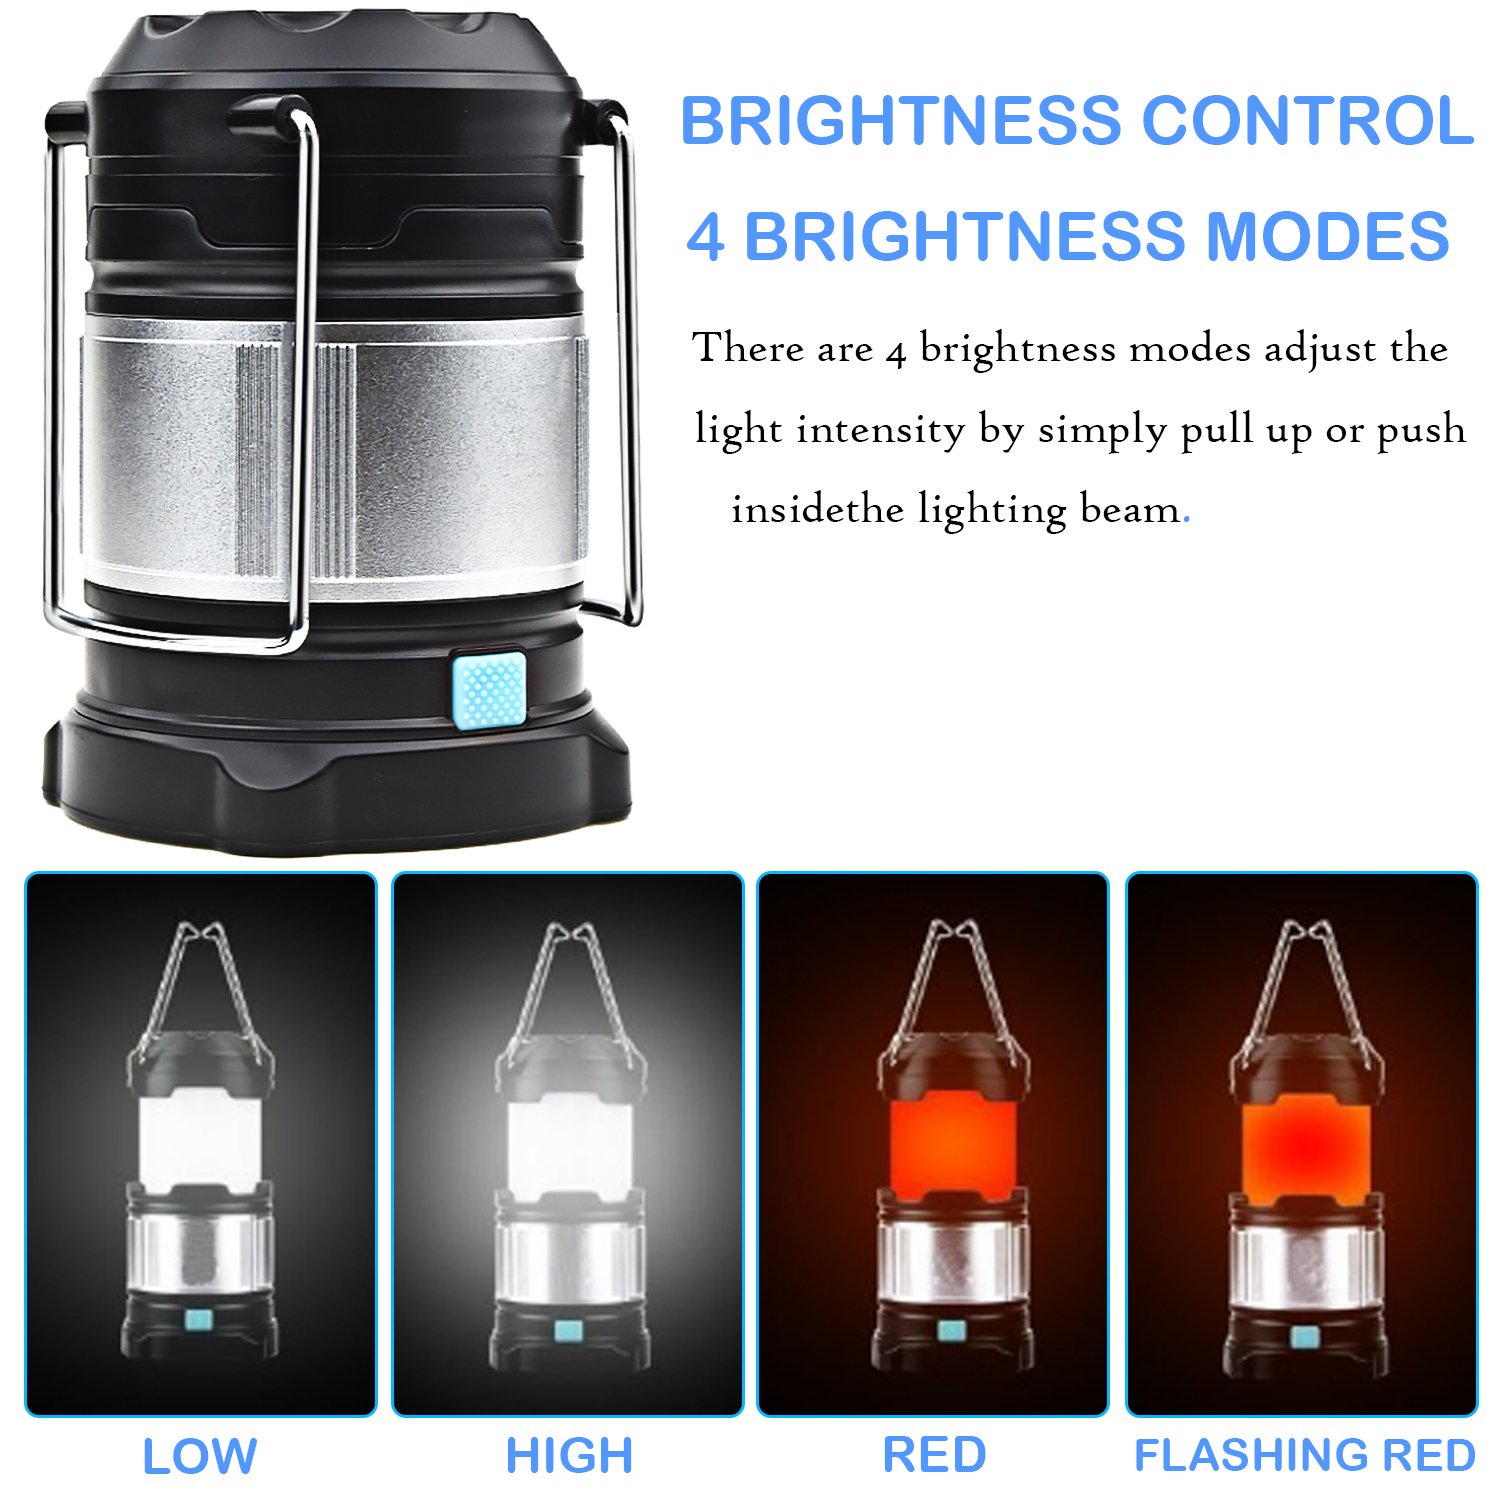 Alcoon Rechargeable LED Camping Lantern Light Lamp with 5600mAh Power Bank, Portable Collapsible Waterproof Outdoor Light with 18650 Li-ion Batteries for Camping Traveling Tent, Emergency, Outage by Alcoon (Image #5)